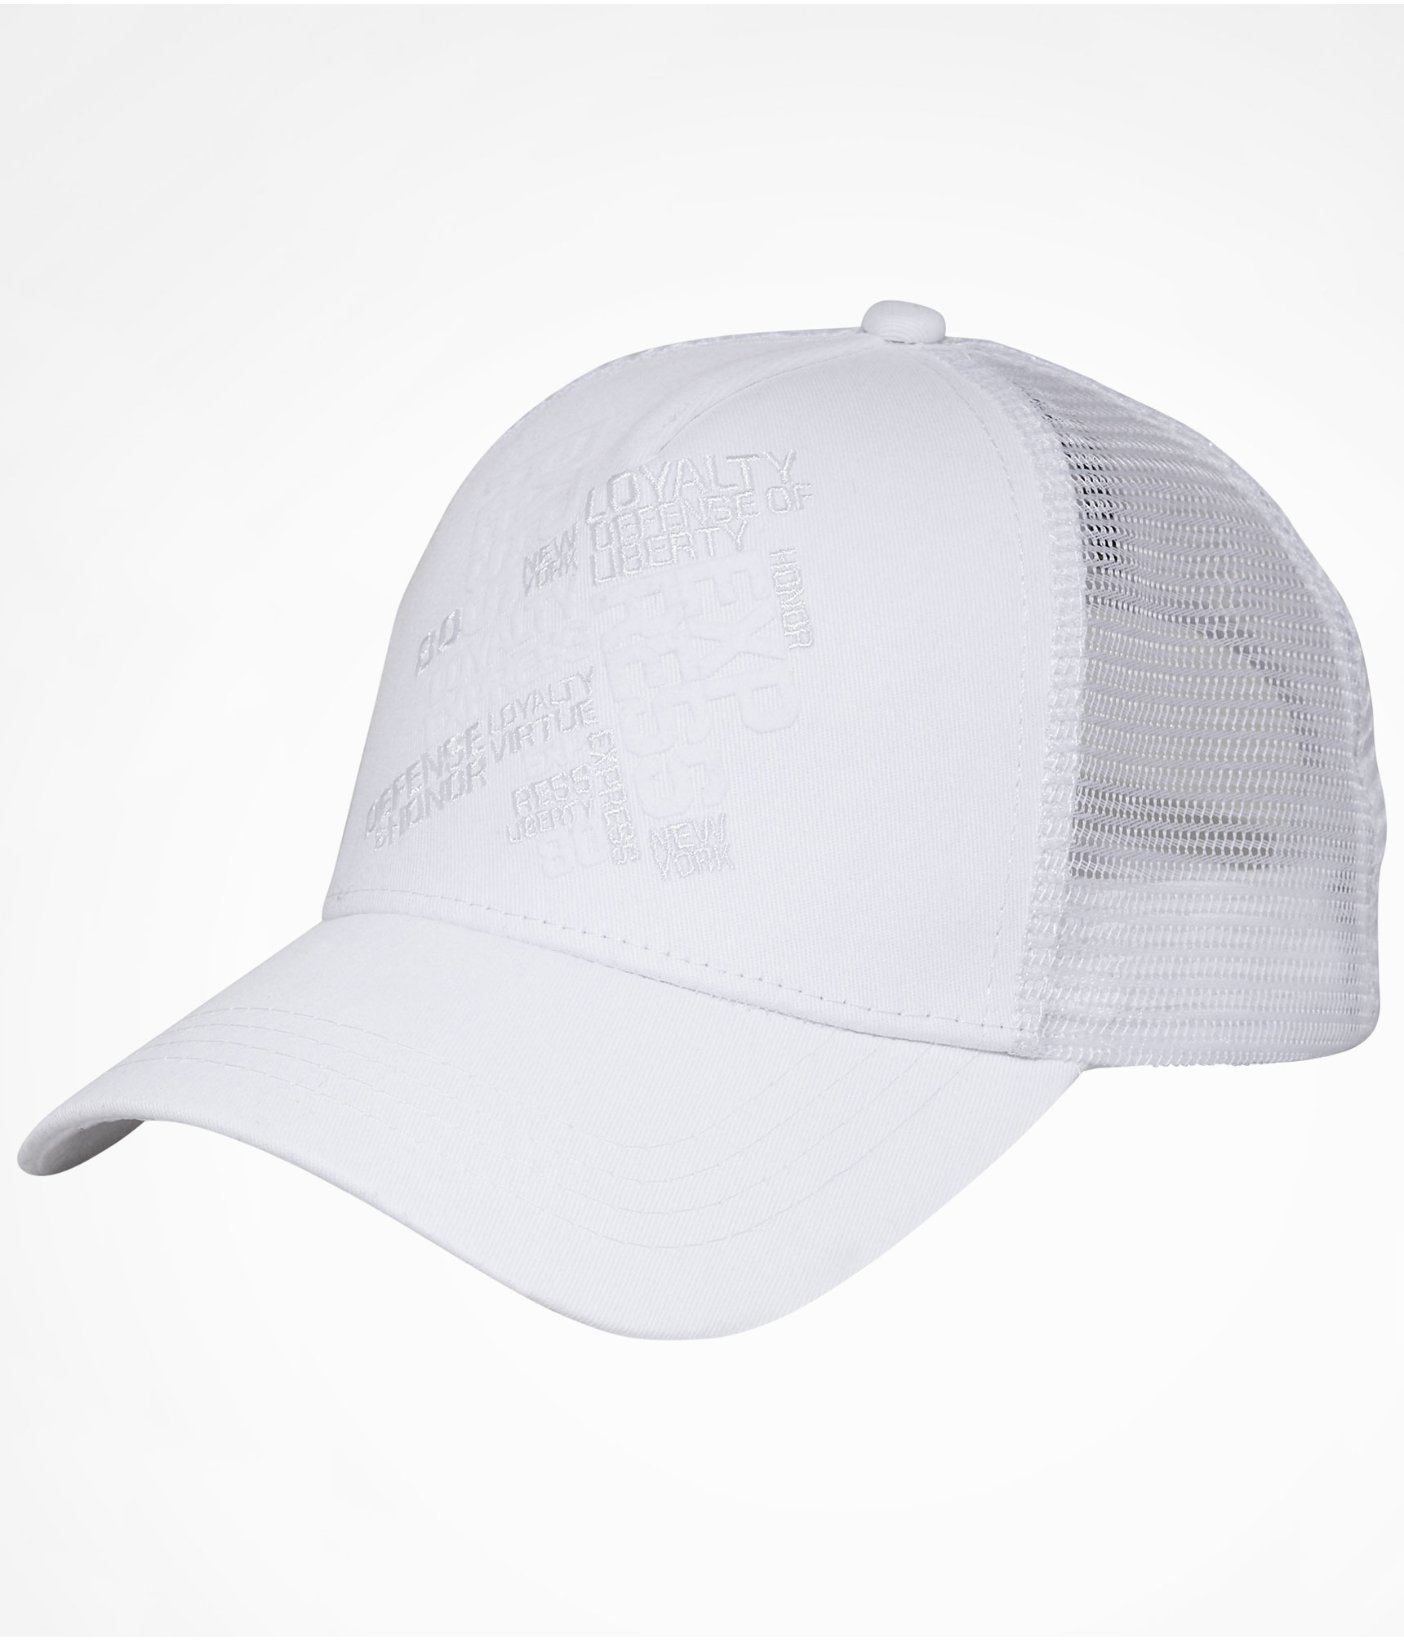 Express Curved Bill Trucker Hat In White For Men Lyst